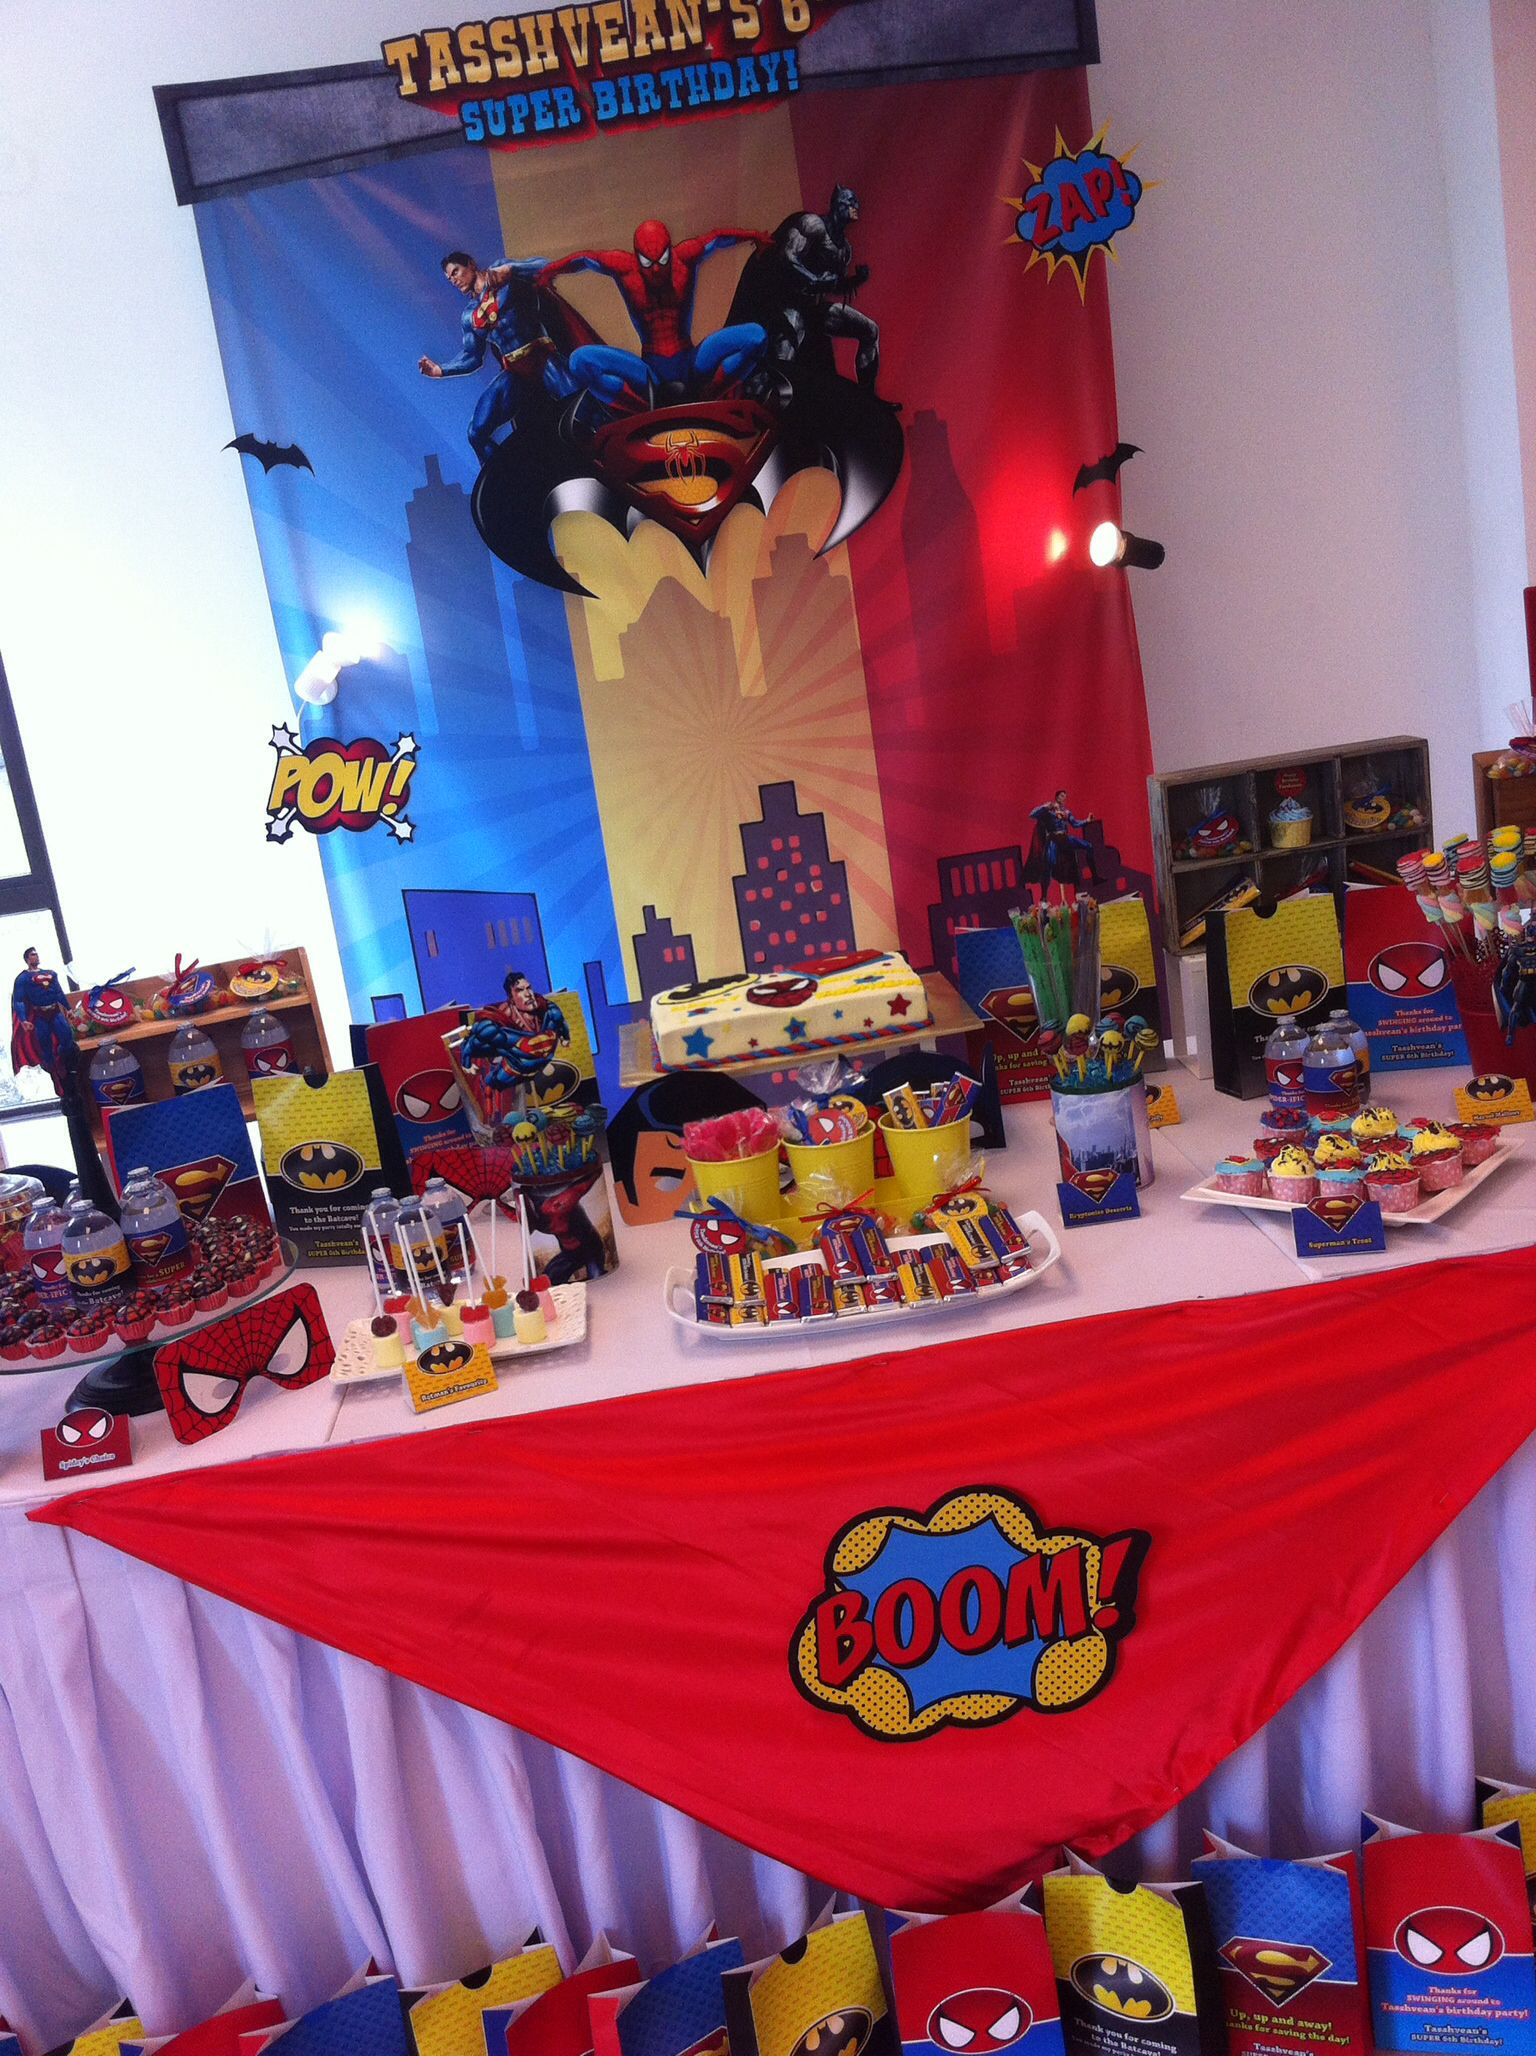 A Superhero Themed Birthday Party Design And Setup By Parteeboo